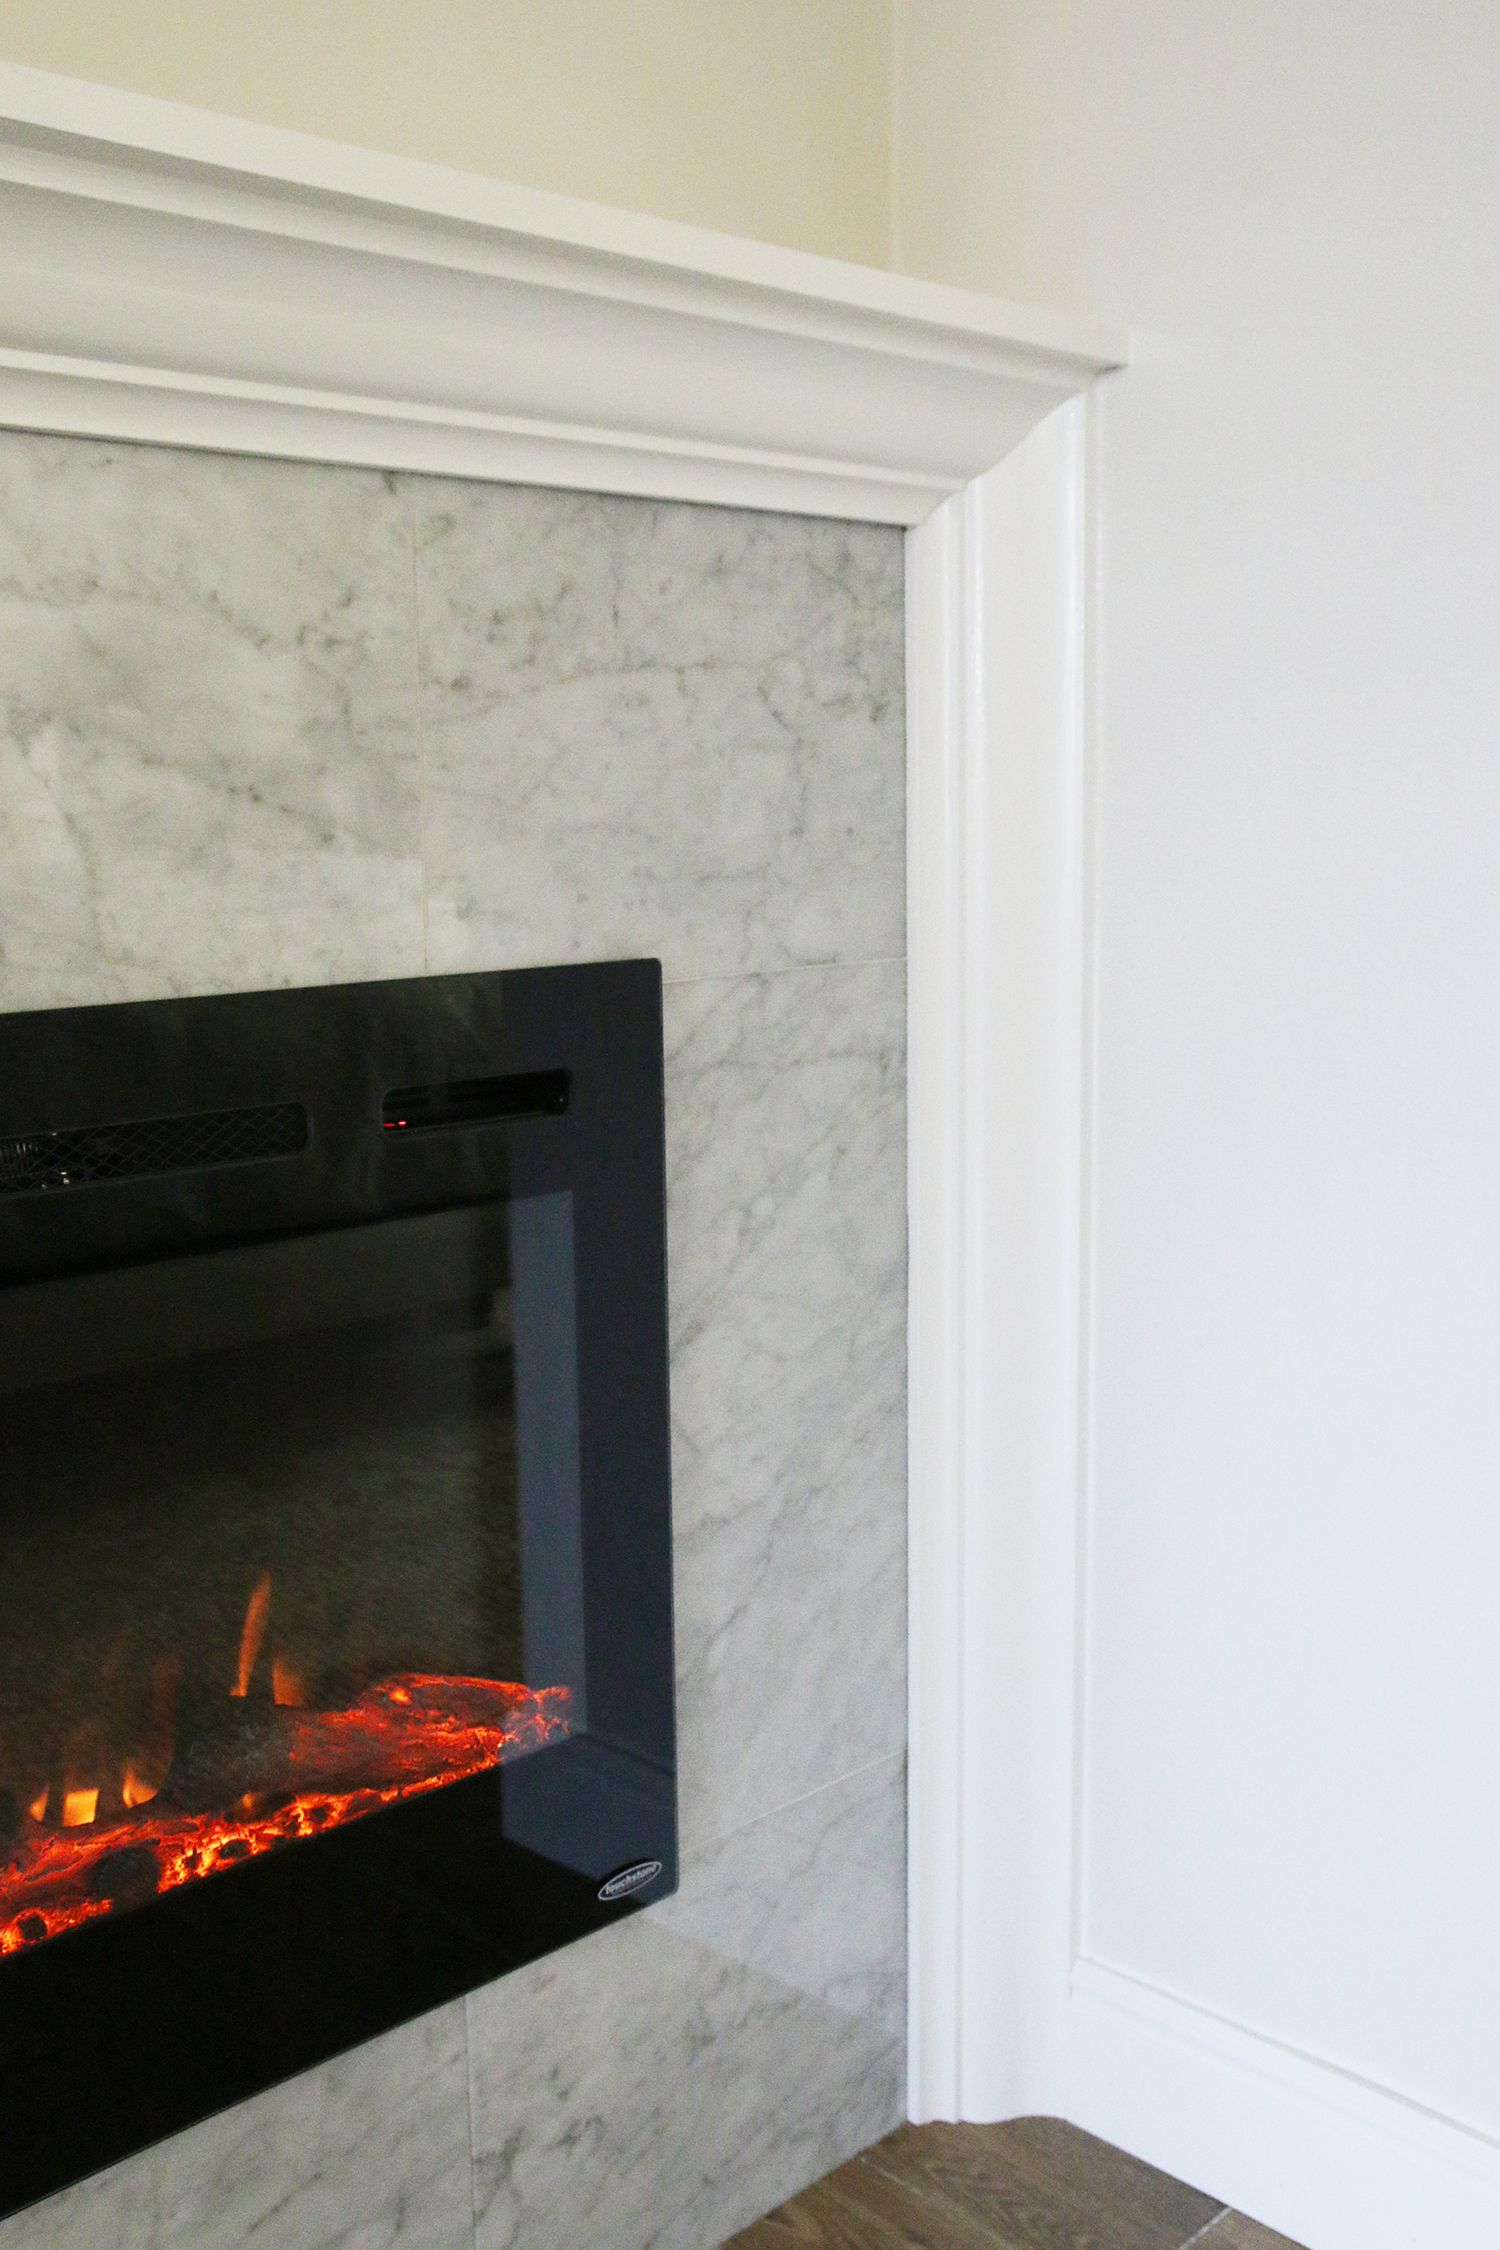 How To Diy A Built In Electric Fireplace Built In Electric Fireplace Electric Fireplace Fireplace